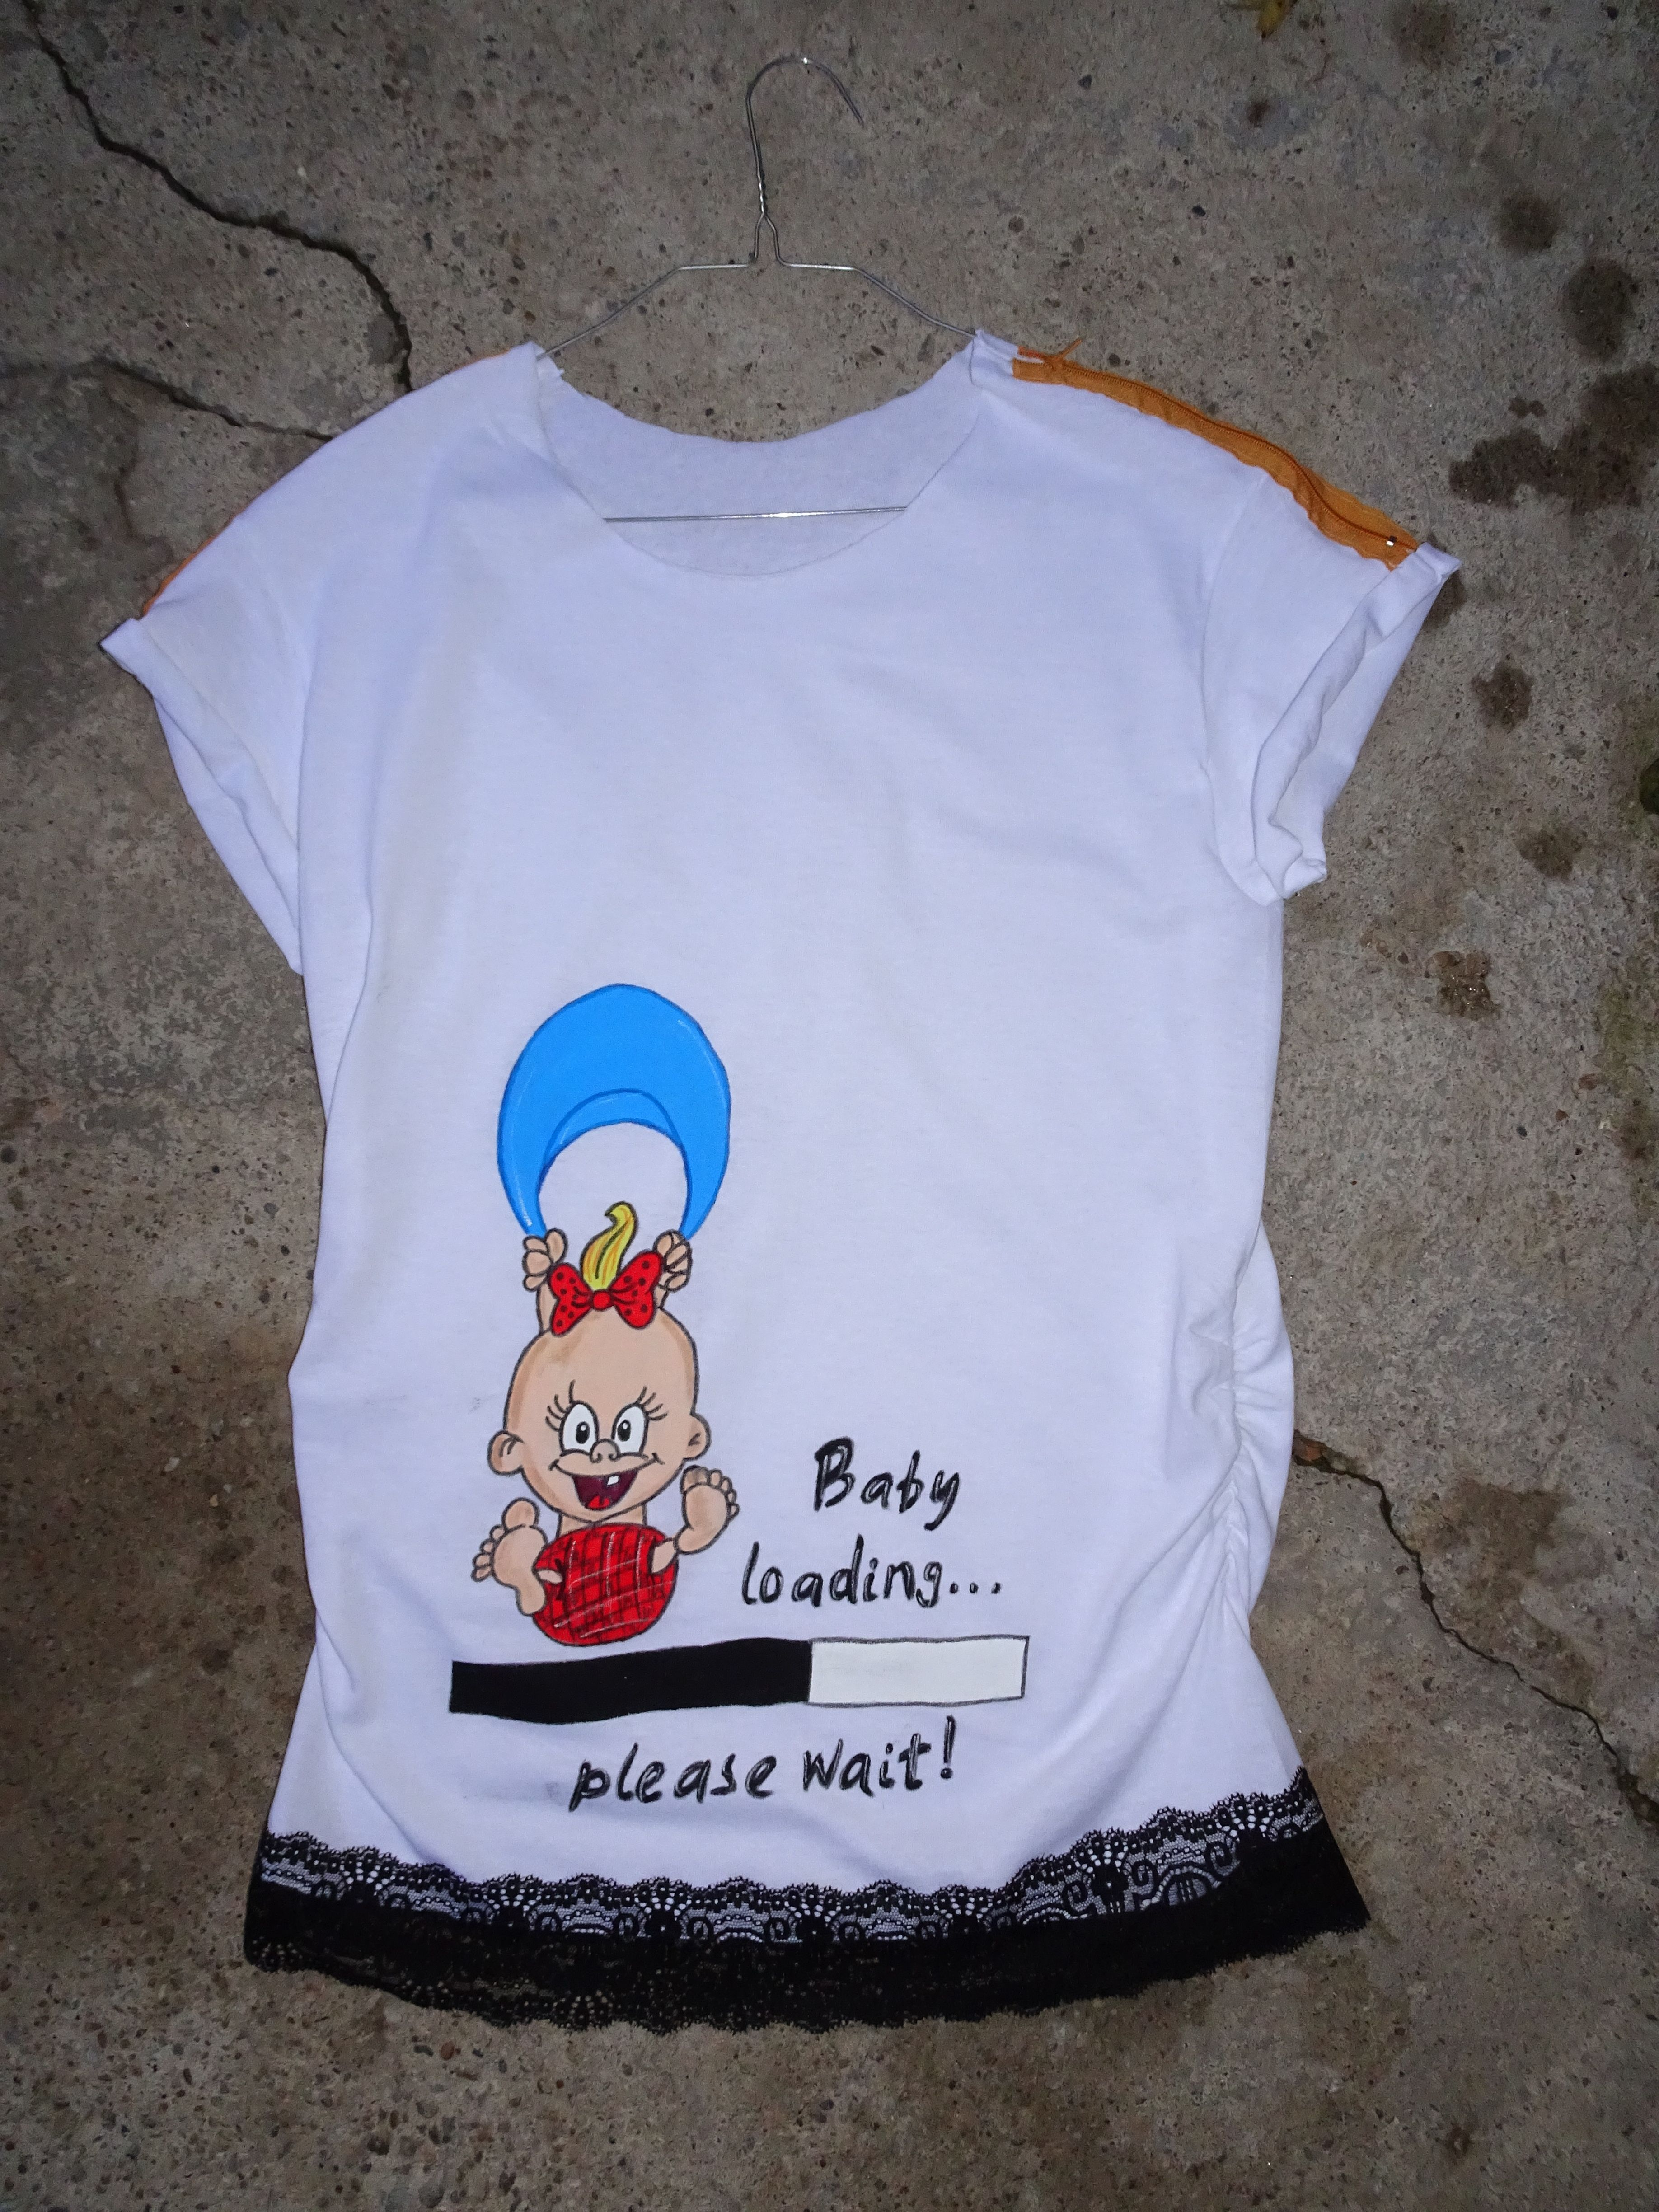 54a6b27301ce9 #tshirt #pregnant #baby #Gift #handmade #painted #wishes #painted #t-shirts  #personalized #women #jersey #paint #shirt